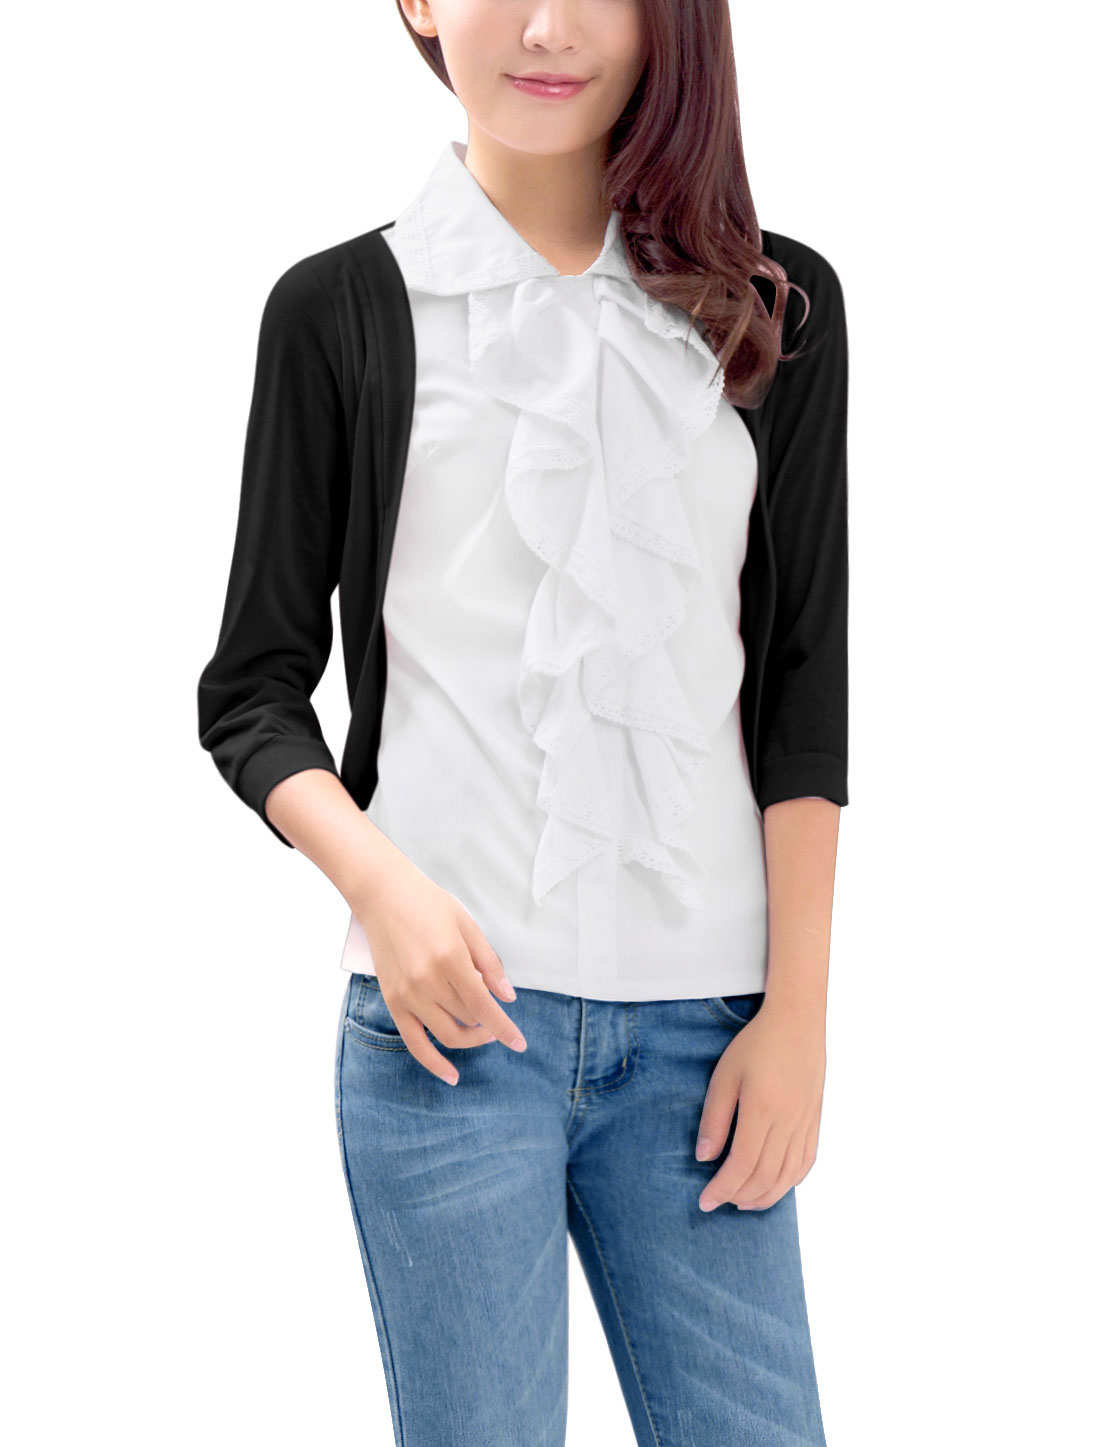 Black 3/4 Sleeve White Ruffled Front Layered Shirts Blouse XS for Lady